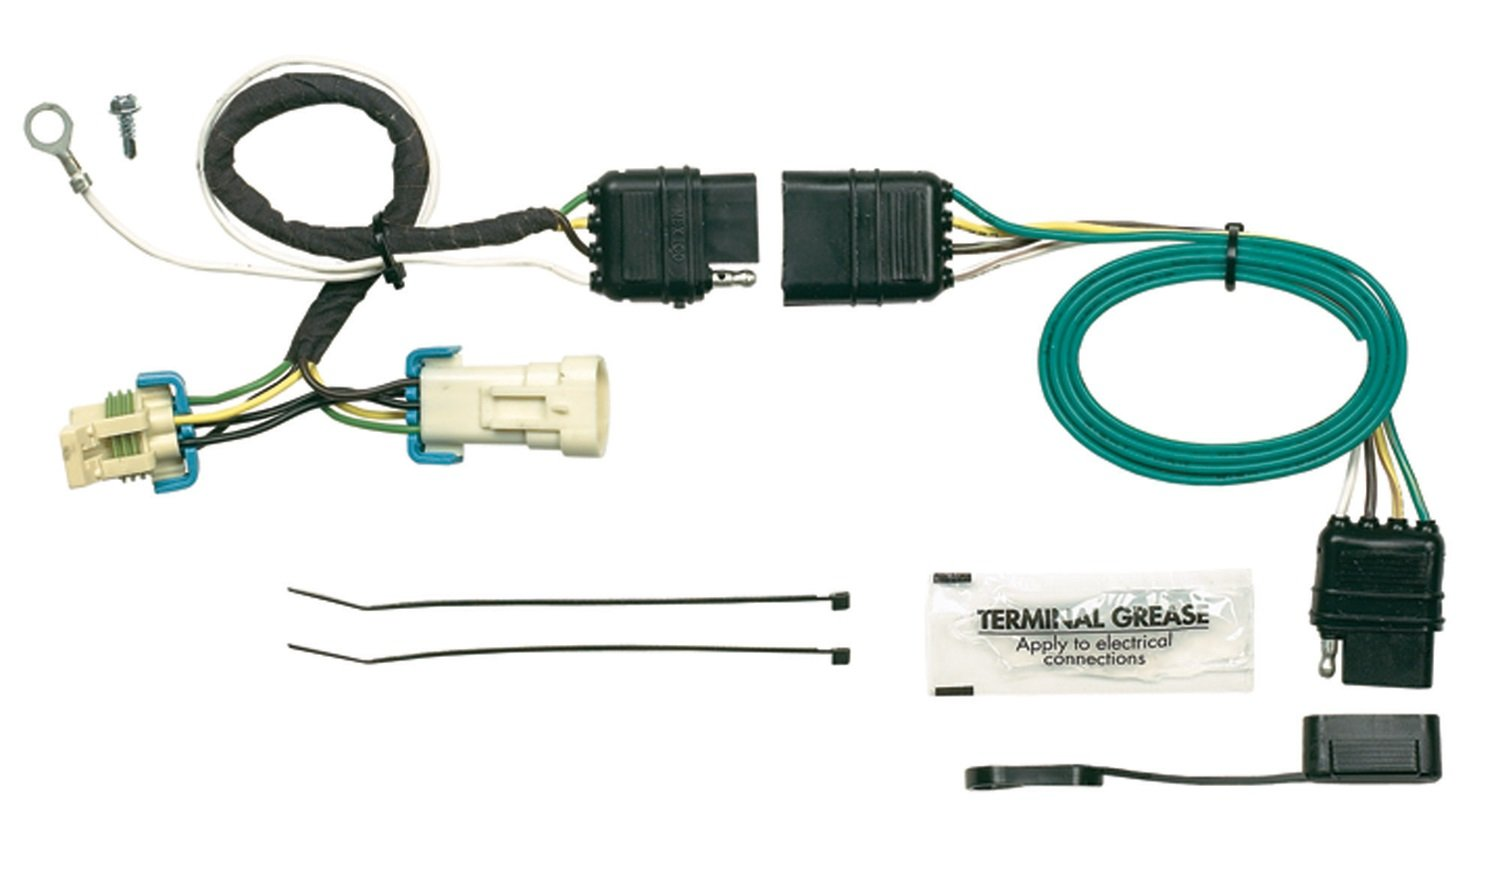 618X6OJbTkL._SL1500_ amazon com hopkins 41135 plug in simple vehicle wiring kit 4 Prong Trailer Wiring Diagram at mifinder.co